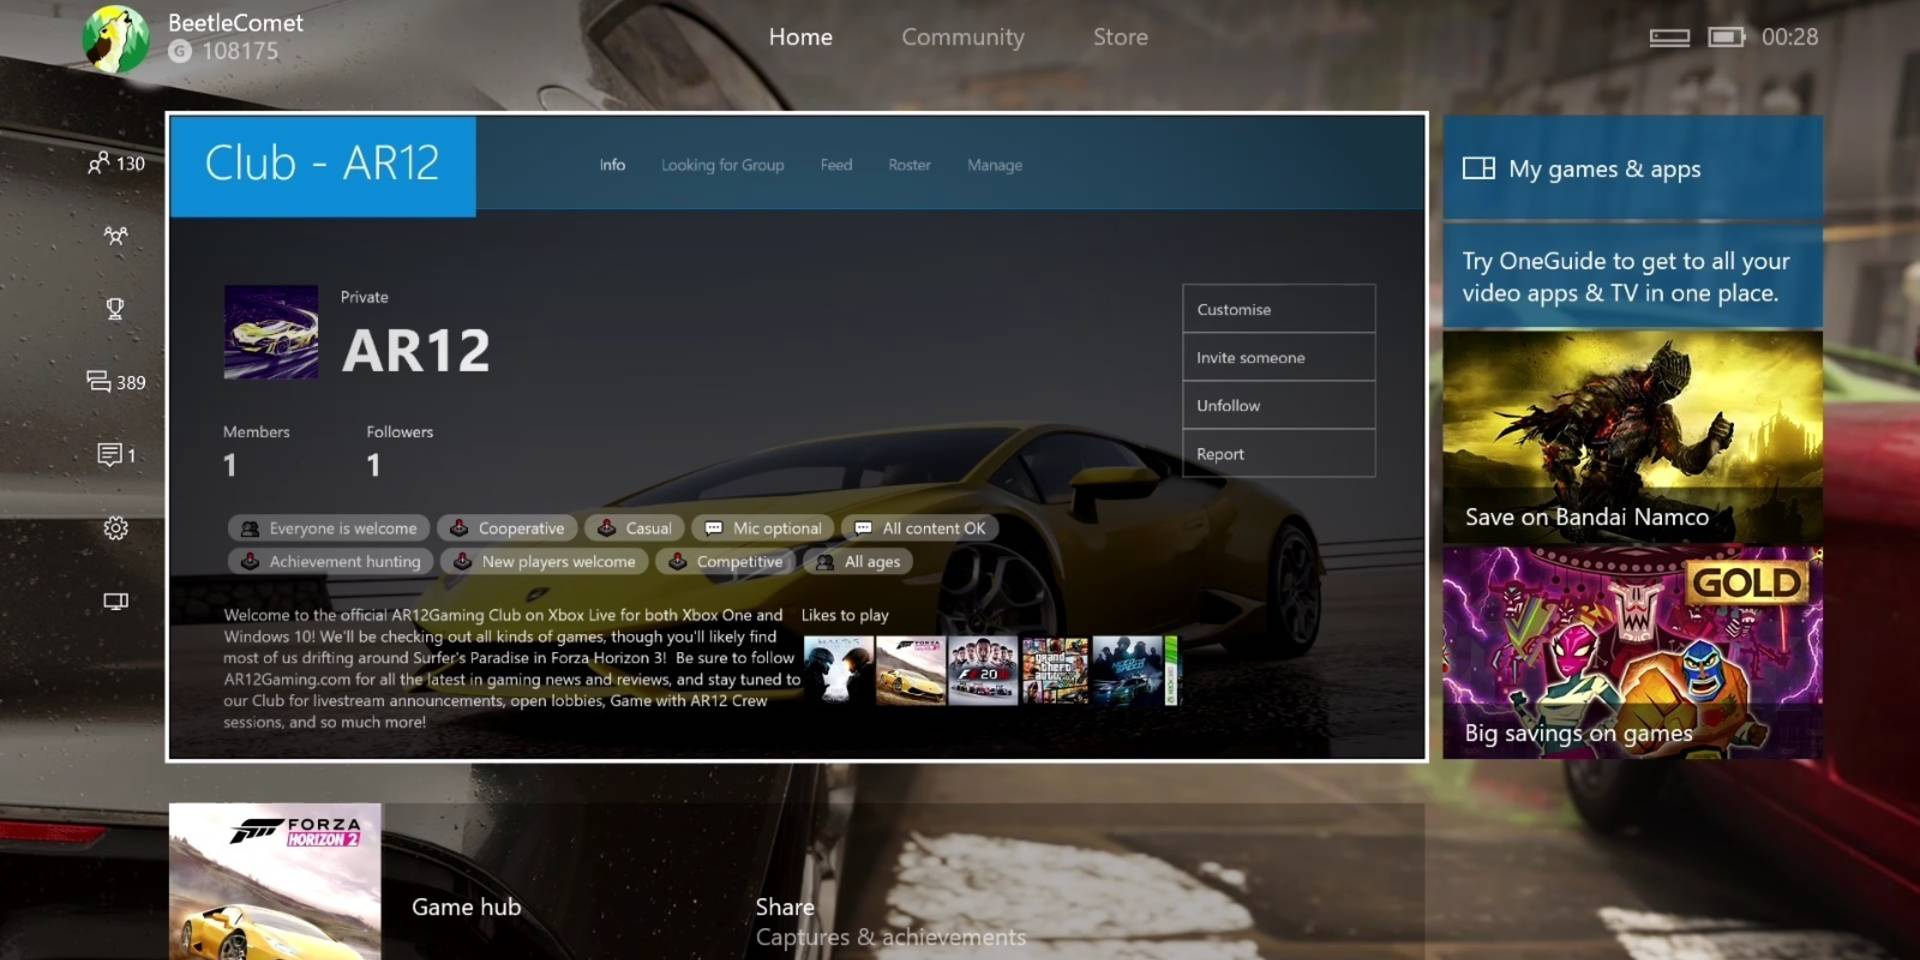 Clubs and Looking for Group on Xbox Live is rolling out to Preview